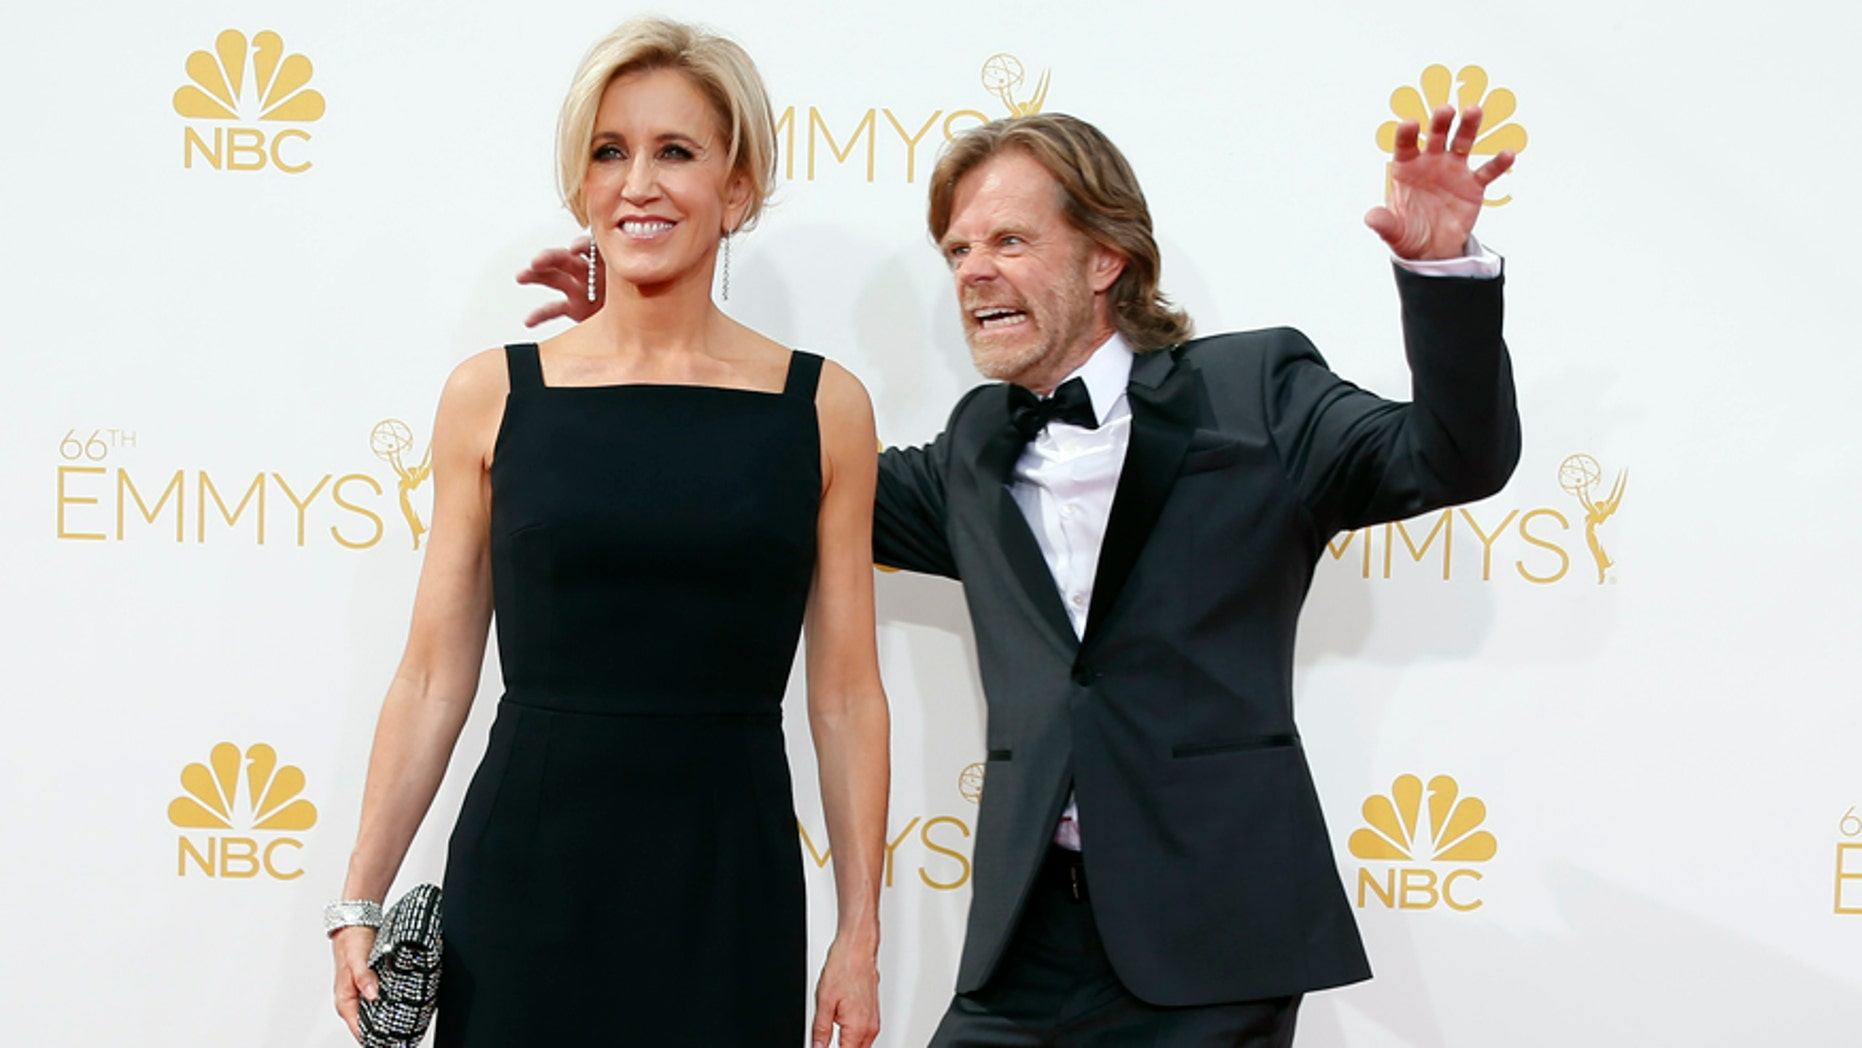 """William H. Macy from the Showtime series """"Shameless"""" and his wife, Felicity Huffman, arrive at the 66th Primetime Emmy Awards in Los Angeles, California August 25, 2014.  REUTERS/Lucy Nicholson (UNITED STATES -Tags: ENTERTAINMENT)(EMMYS-ARRIVALS) - RTR43Q7X"""